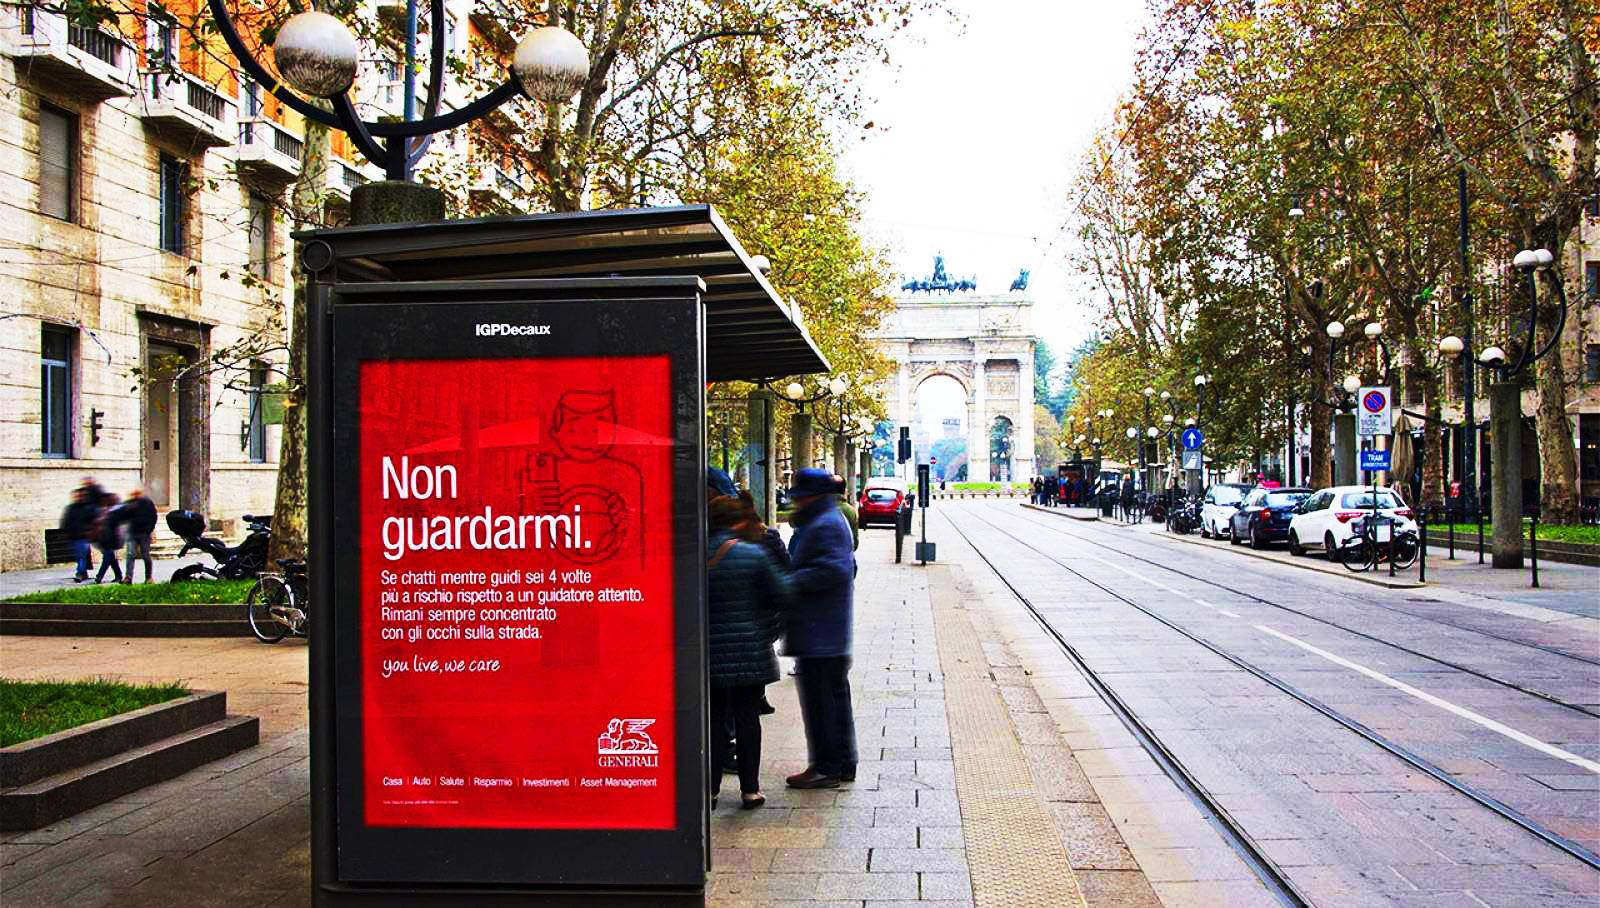 OOH advertising IGPDecaux in Milan bus shelters for Generali